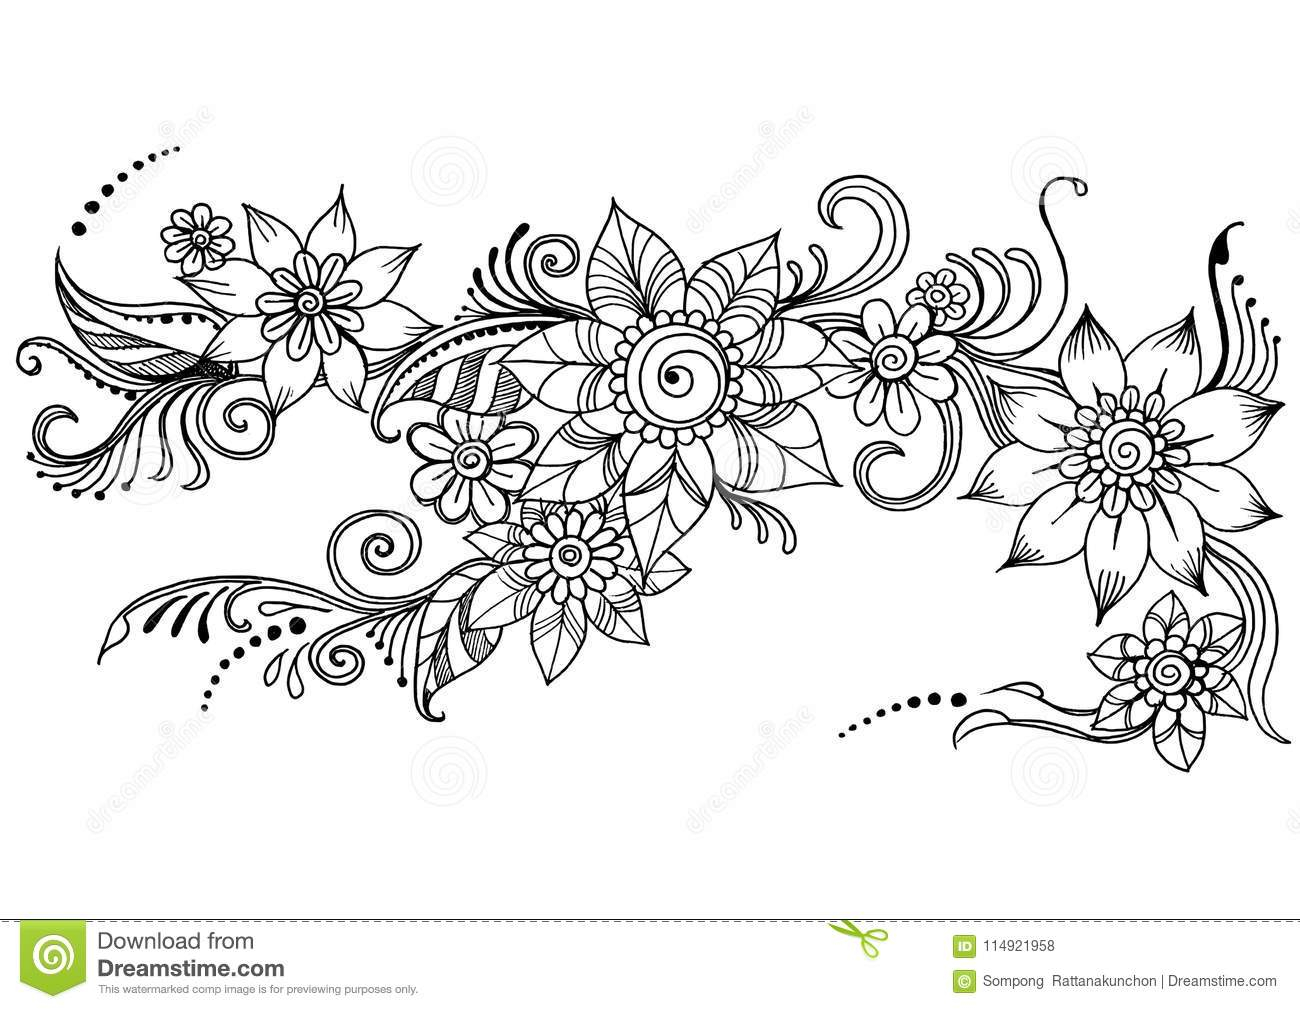 Doodle Art Coloring Pages Doodle Art Coloring Book 62914 Hypermachiavellism